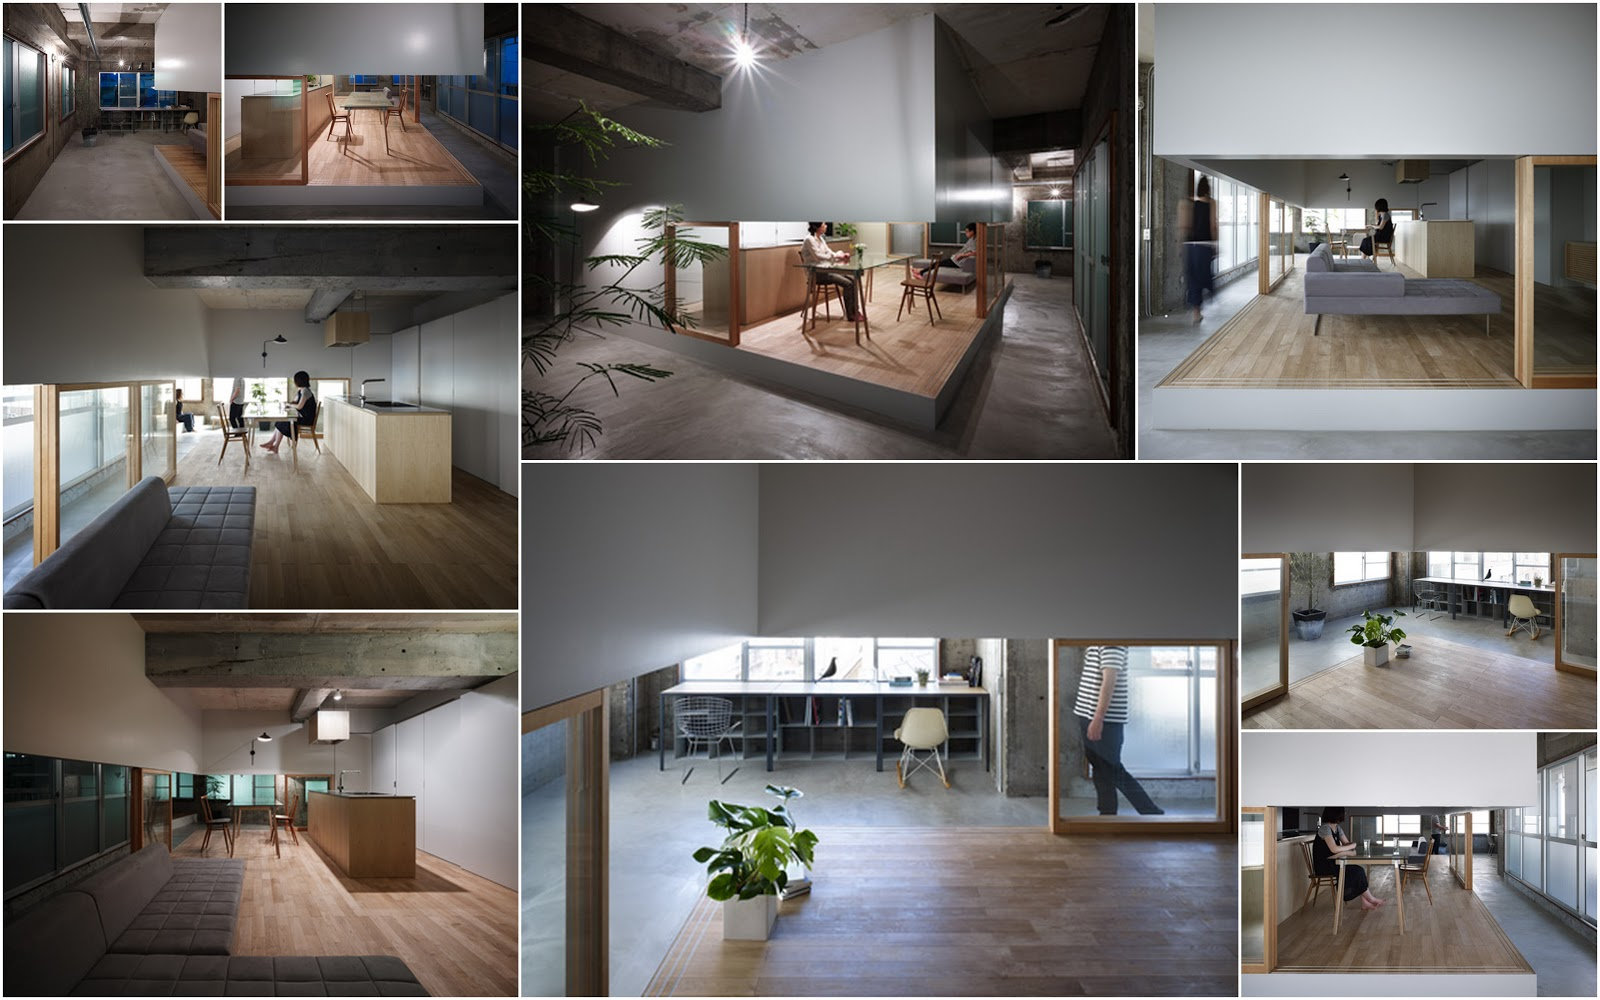 suppose design office toshiyuki. Here Is Another Project By Our Featured Architects Suppose Design Office, This Time The Renovation Of A House In Hiroshima City, Japan, Where Interiors Are Office Toshiyuki